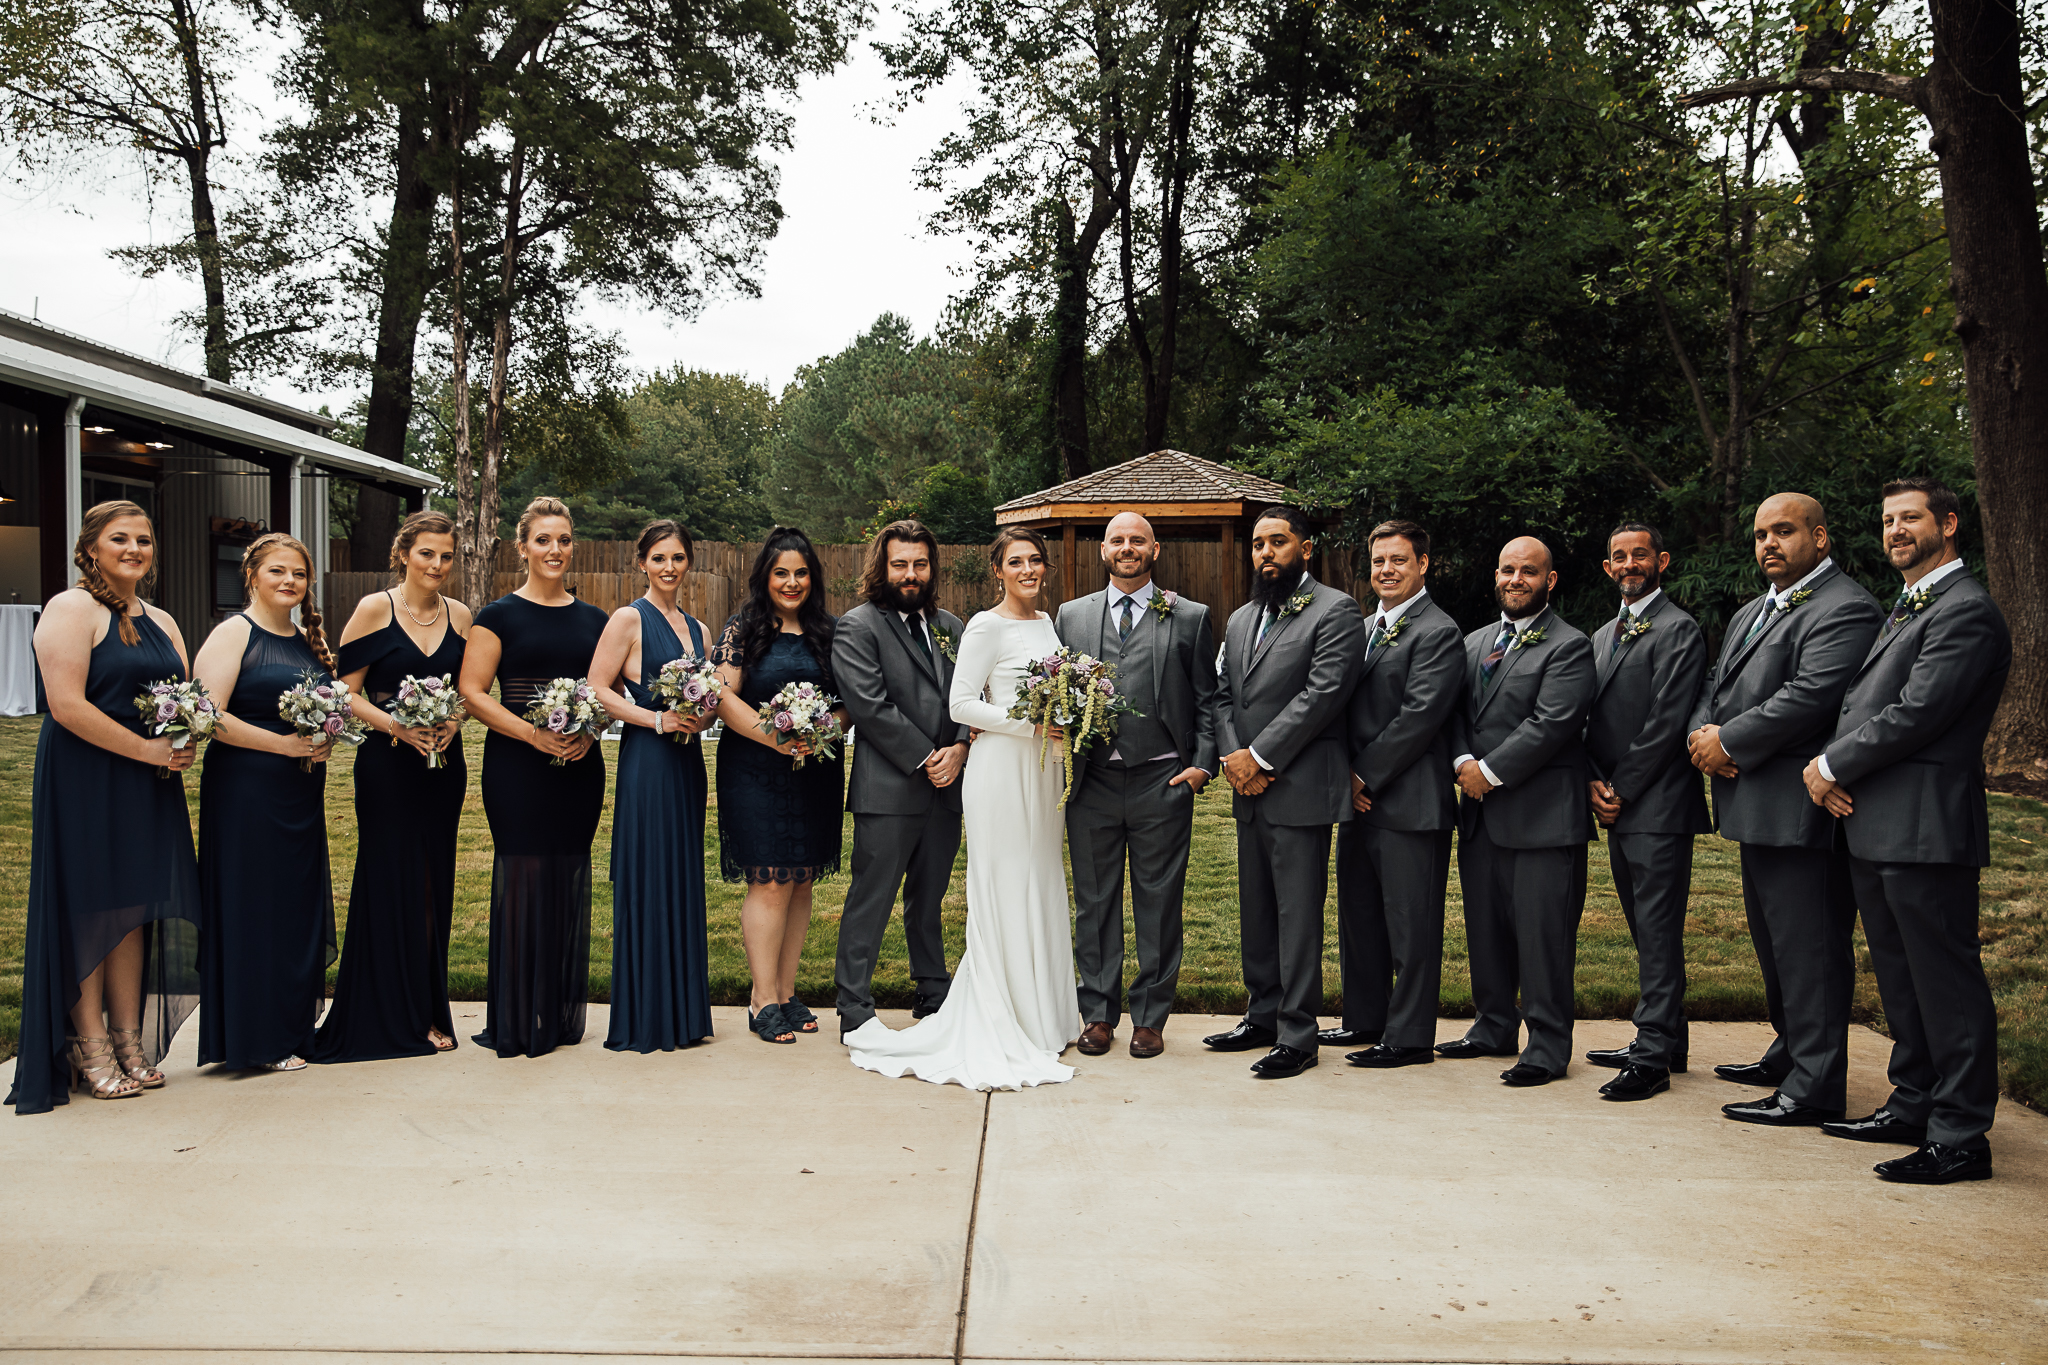 Caitlin-and-Bryan-Avon-Acres-Memphis-TN-Wedding-88.jpg